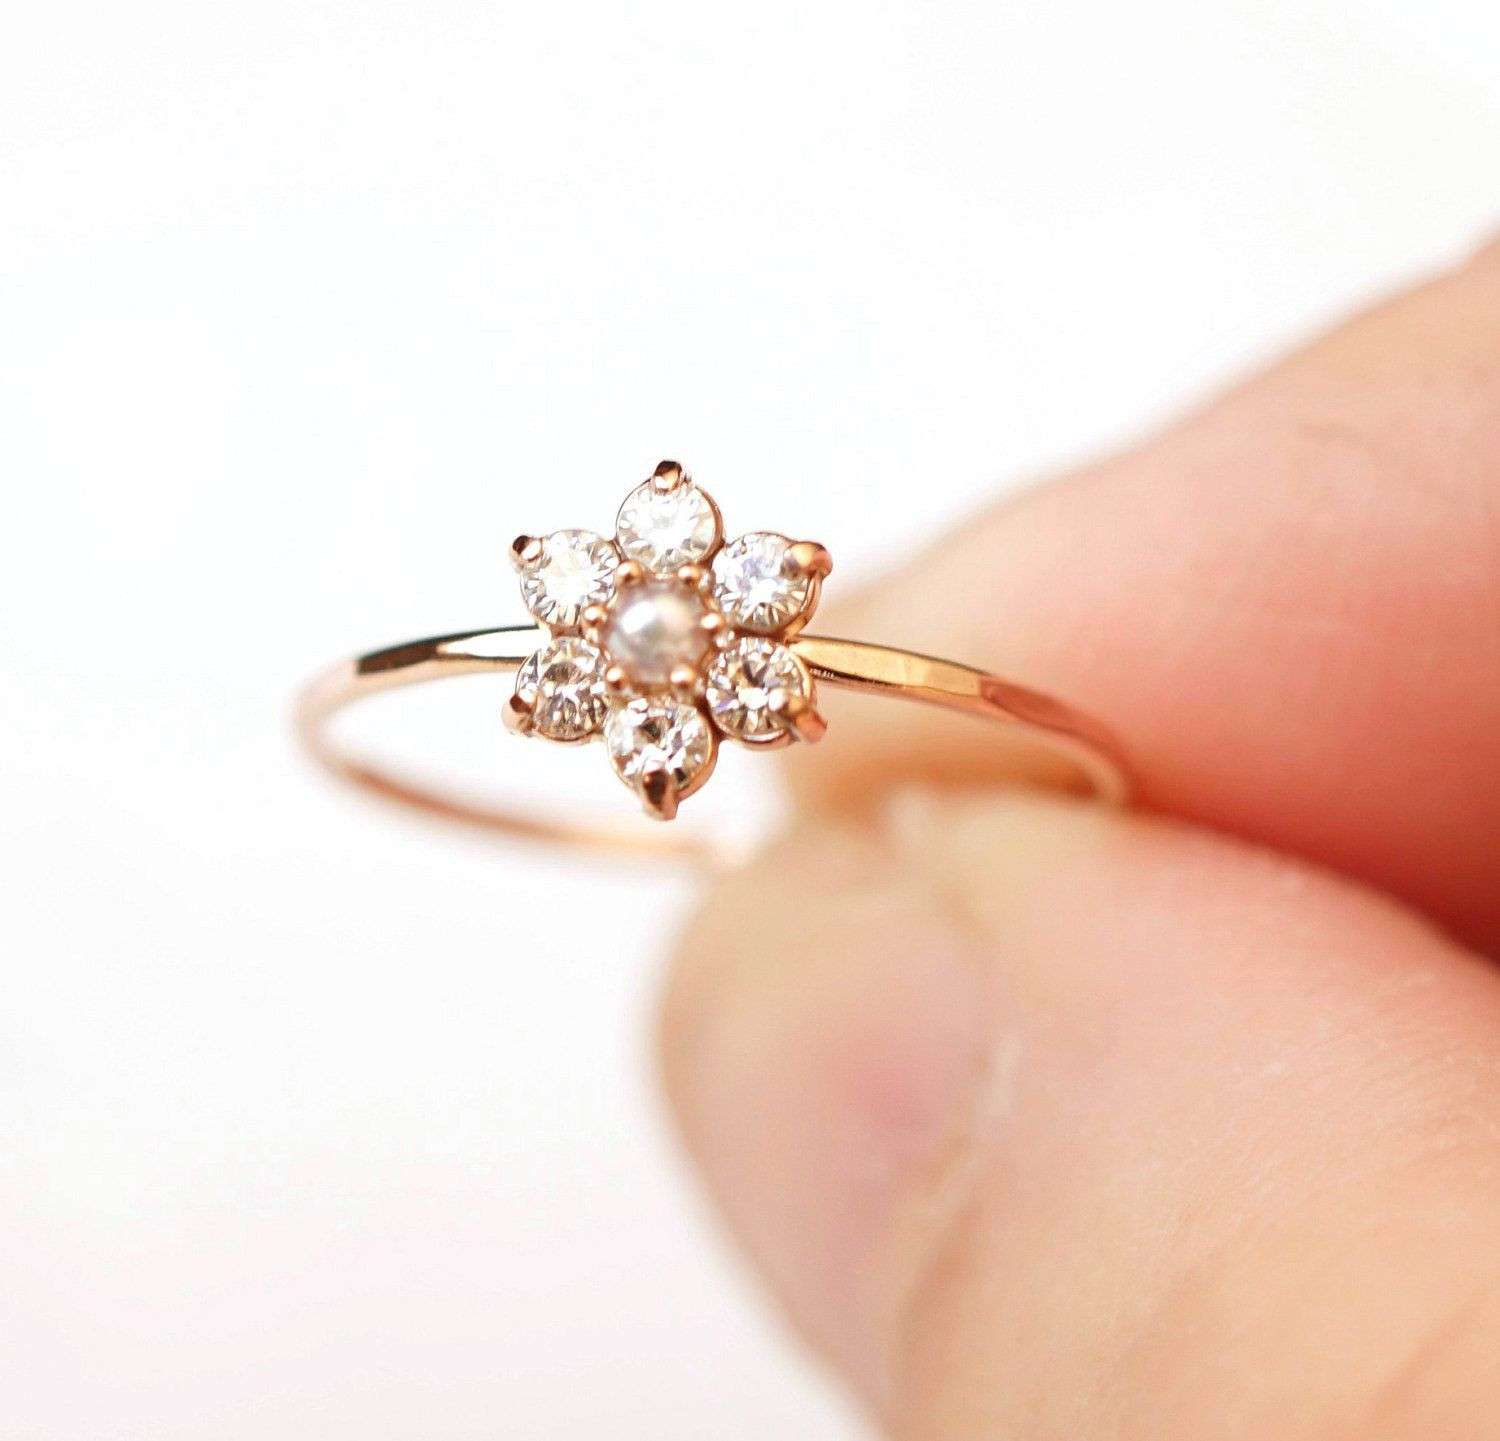 Moissanite Ring, Daisy Ring, Flower Ring, Cluster Ring, 14K Gold Within Most Recent Sparkling Daisy Flower Rings (Gallery 8 of 25)